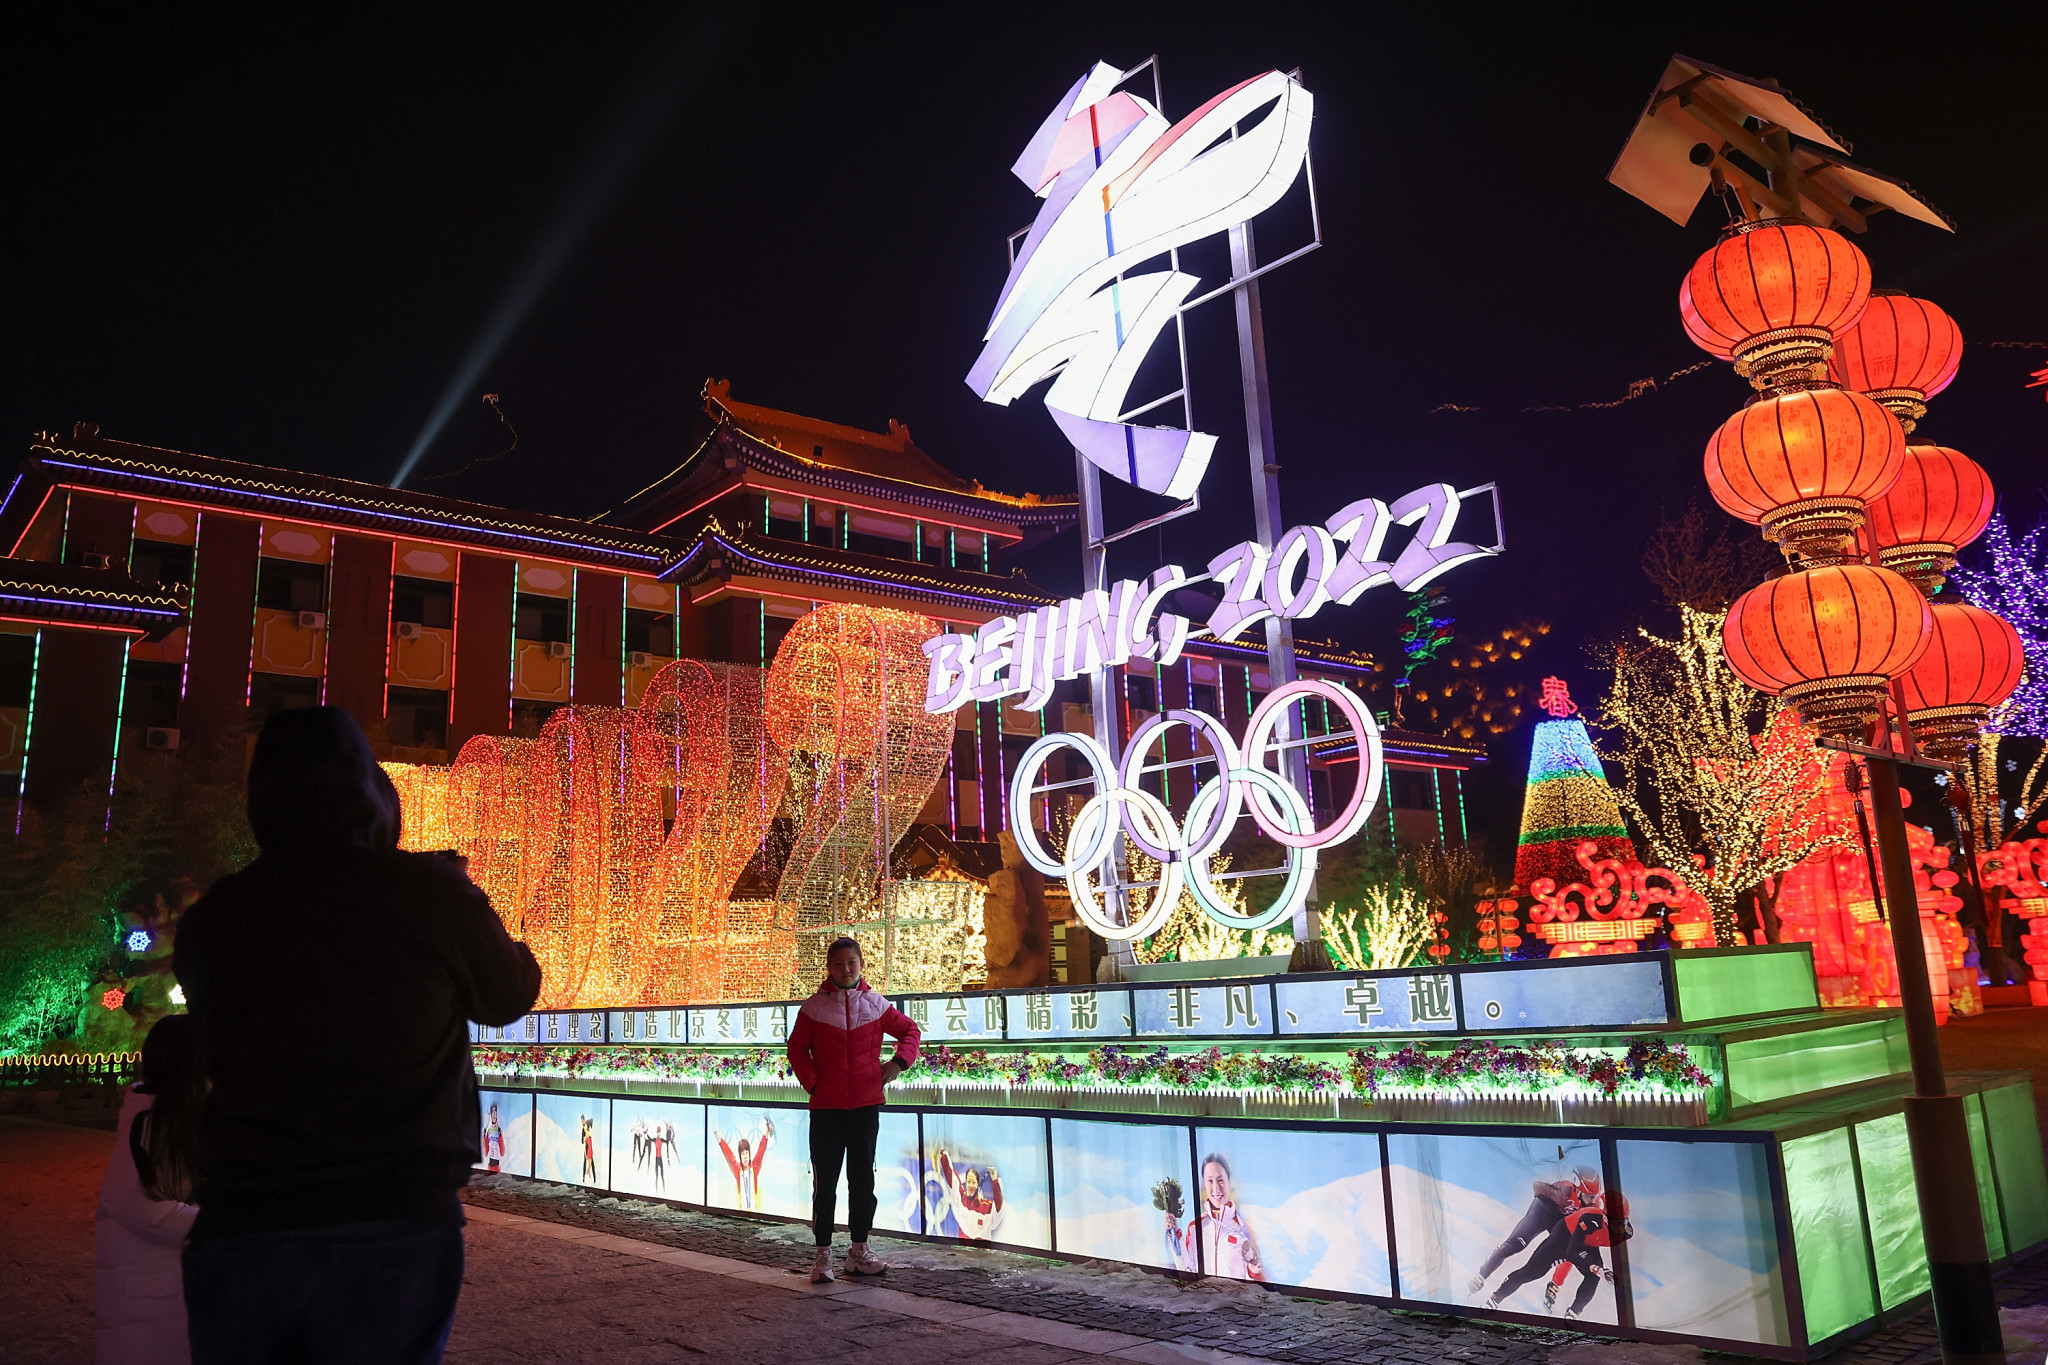 Beijing 2022 is set to be the first Winter Olympic Games held in China ©Getty Images